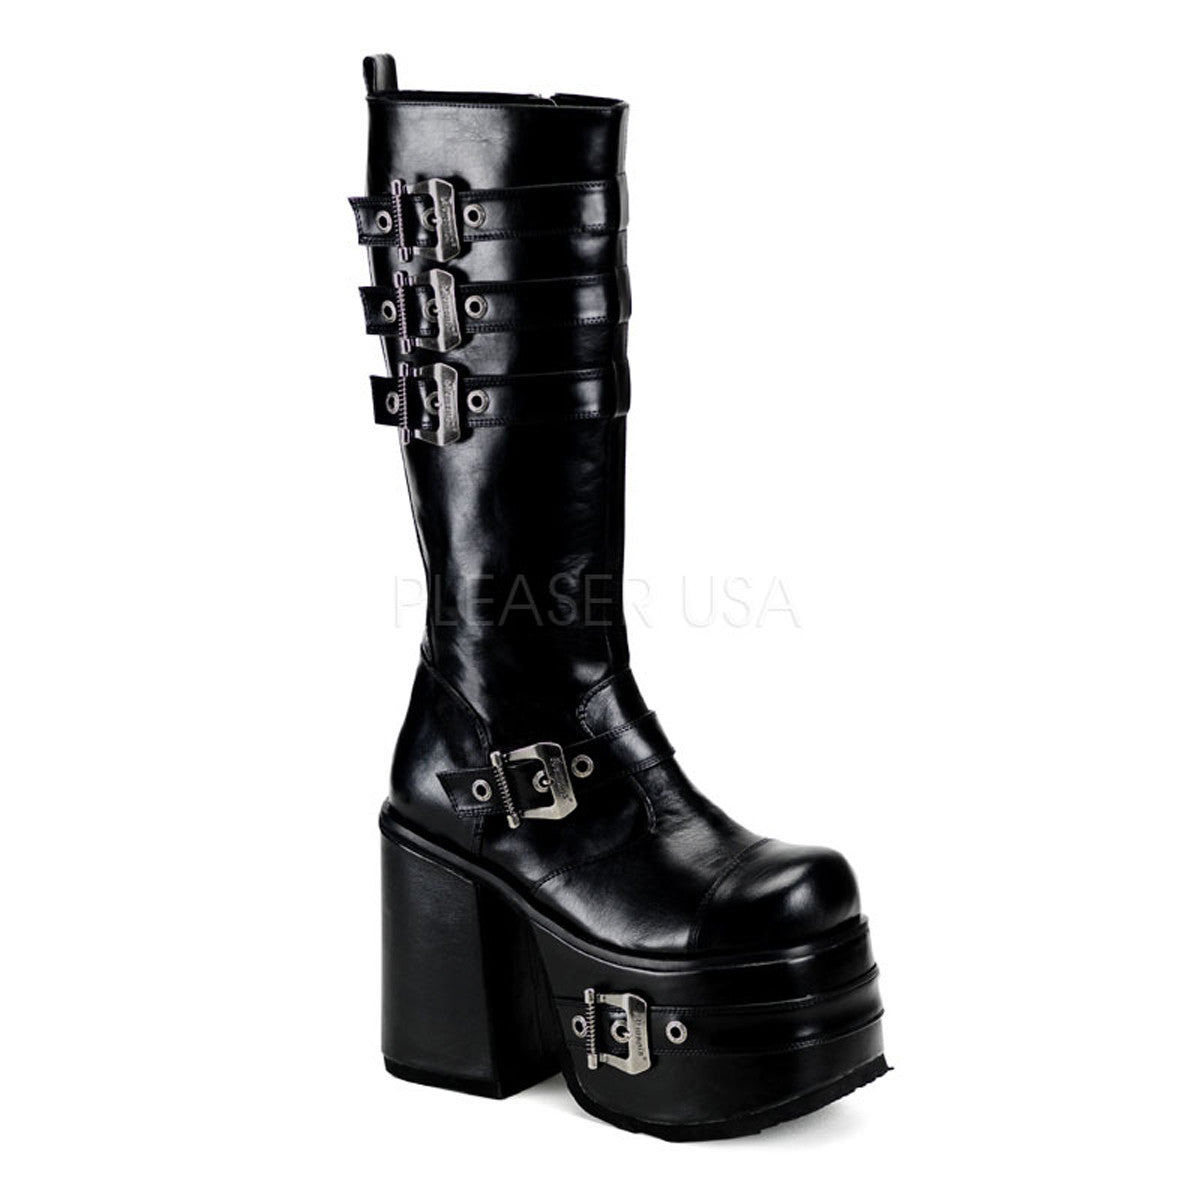 CHOPPER-101 Vegan Boots